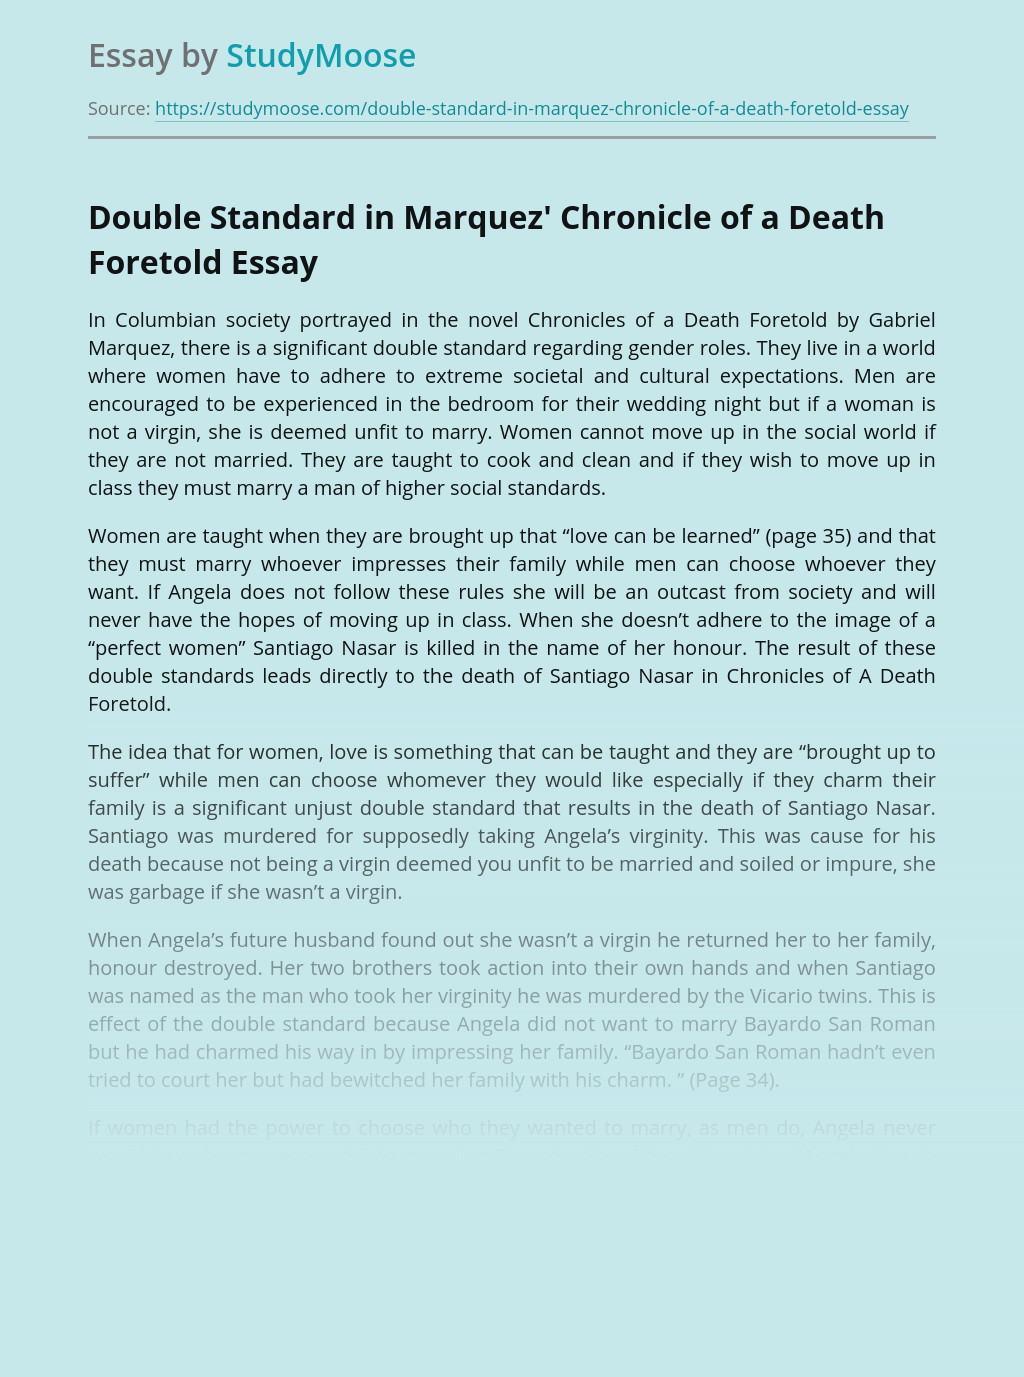 Double Standard in Marquez' Chronicle of a Death Foretold